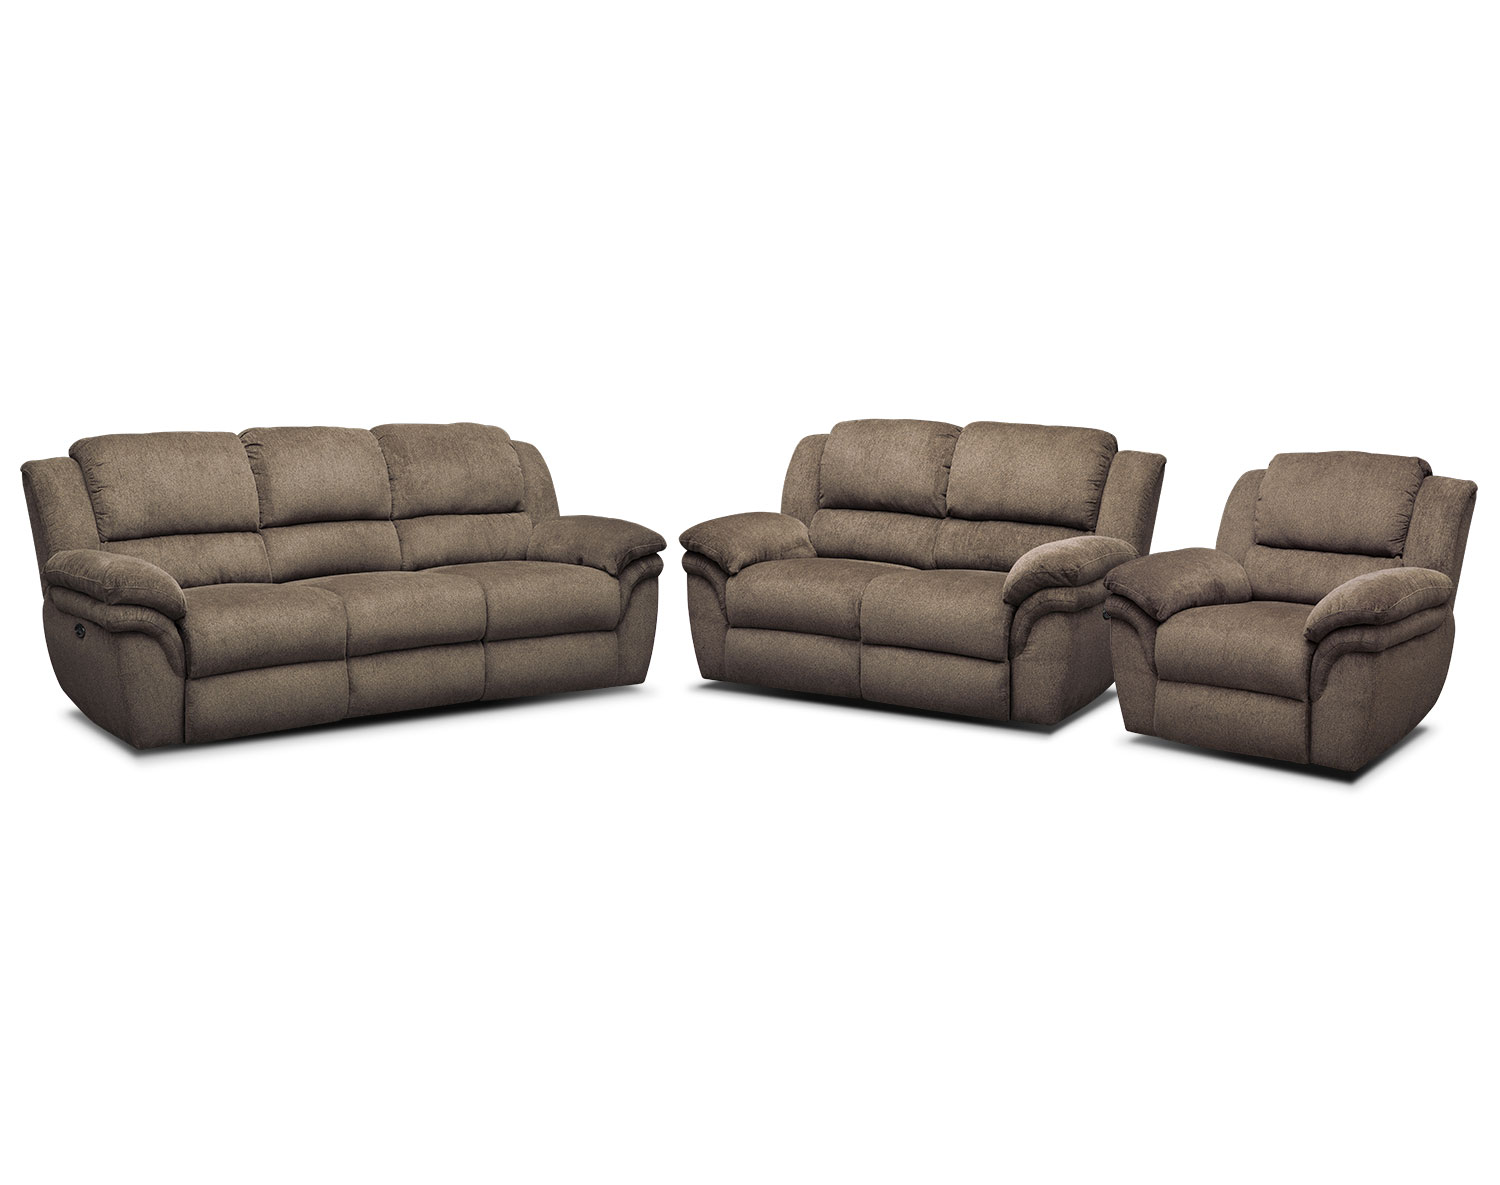 The Aldo Power Reclining Living Room Collection- Mocha